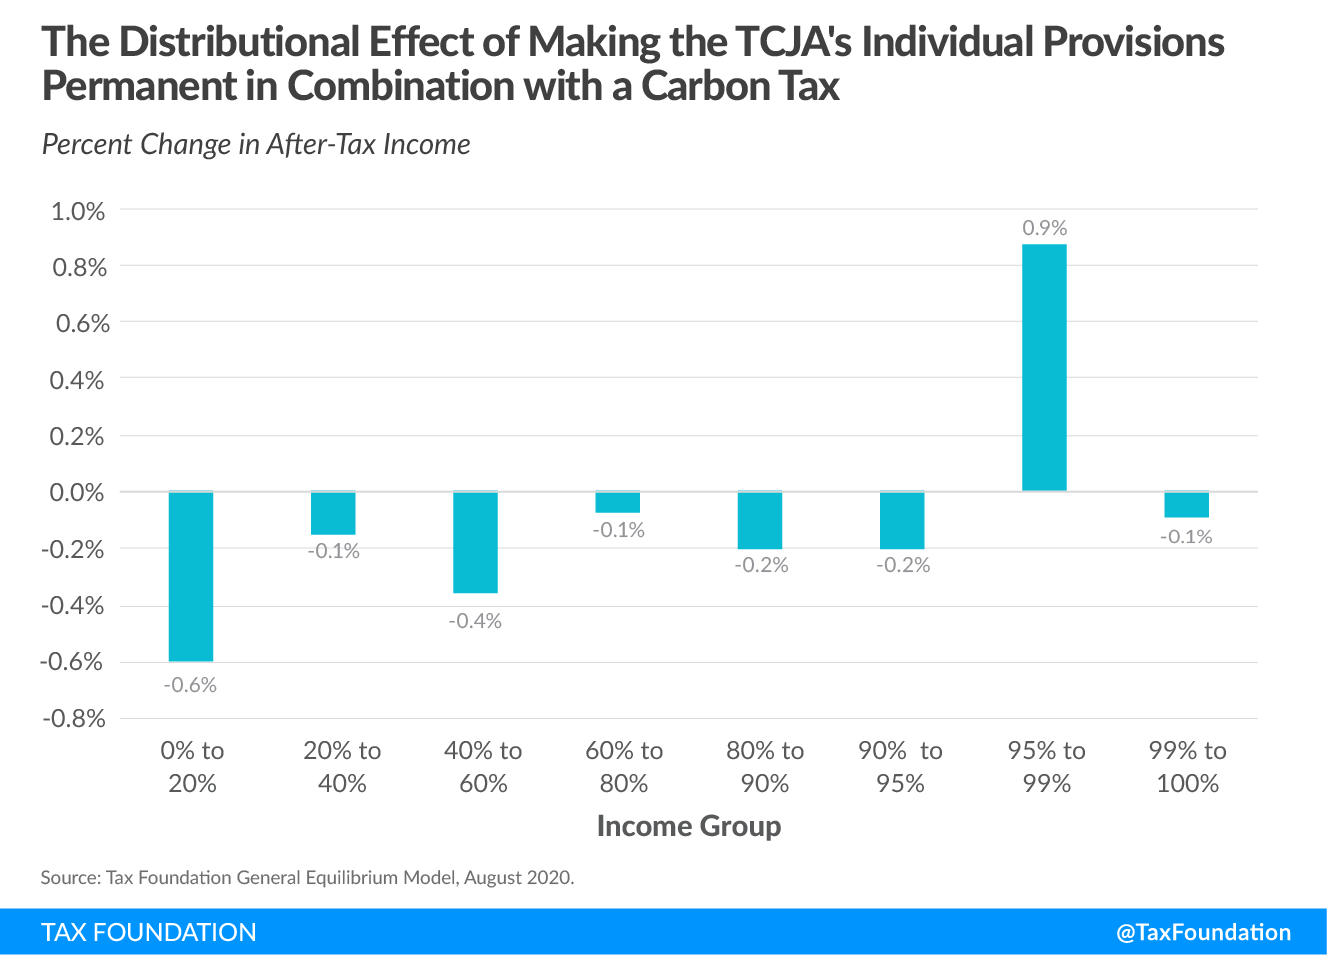 The distributional effect of making the Tax Cuts and Jobs Act TCJA individual provisions permanent in combination with a US carbon tax